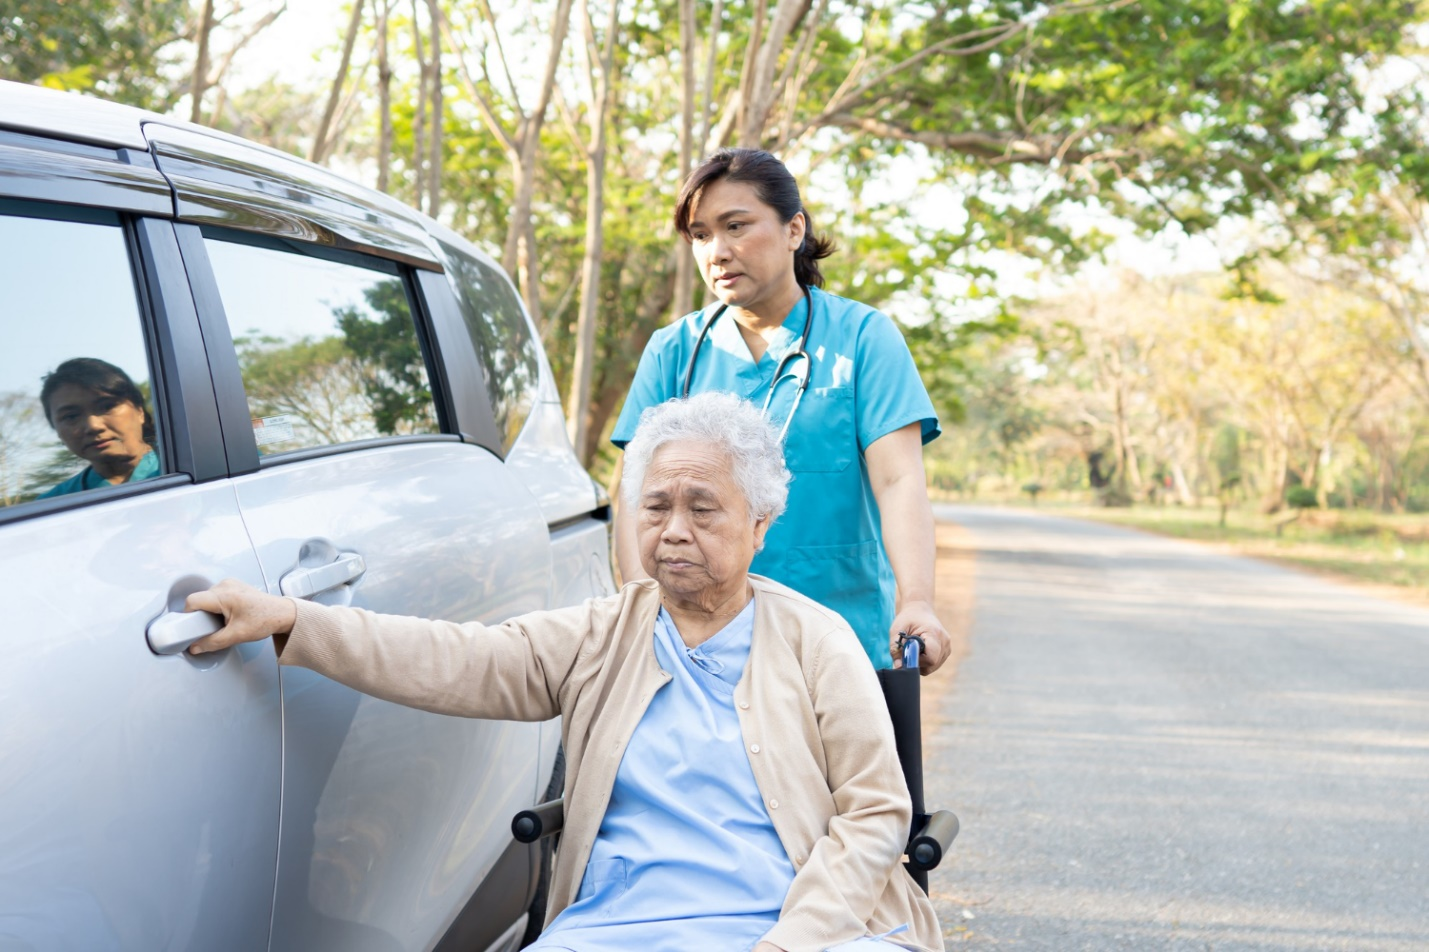 C:\Users\Dell\Downloads\asian-senior-woman-patient-sitting-wheelchair-prepare-get-her-car.jpg